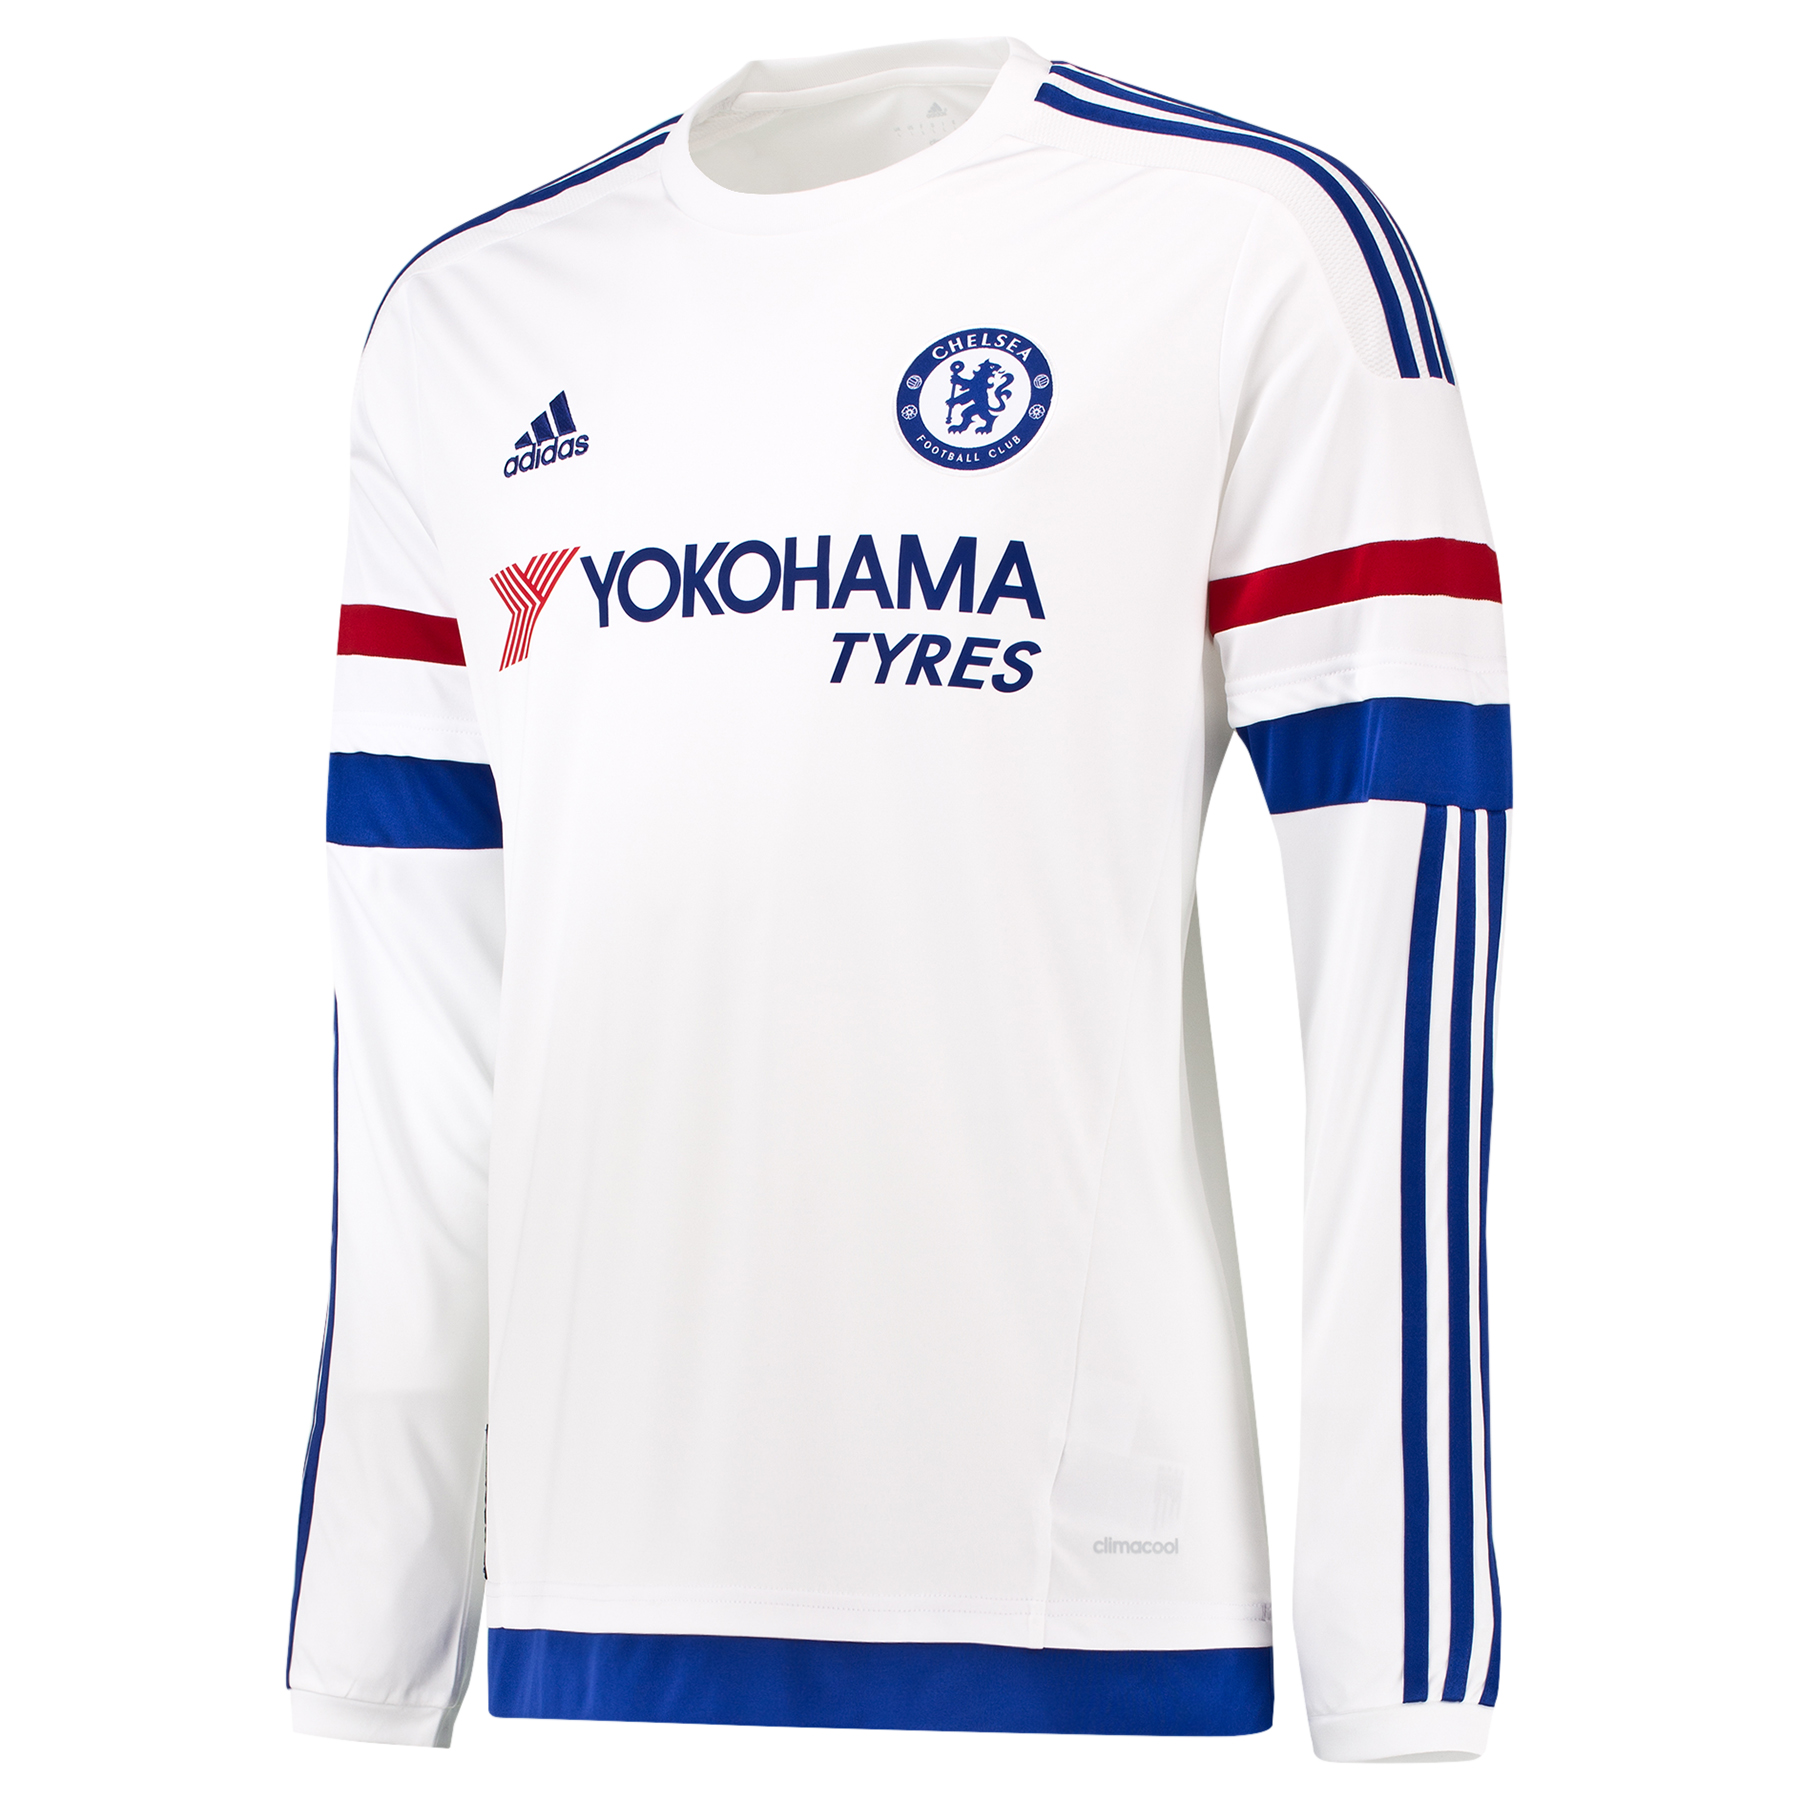 Chelsea Away Shirt 2015/16 - Long Sleeve - Kids   Show your support for your favourite club with the new 2015/16 Chelsea Kids Long Sleeved Away Shirt. The Away Kit mirrors the colour story of the Home Kit in an unseen way: Red, White and Chelsea Blue stripes on the arms. The fingerprint label adds value and an authentic story. Join the likes of Diego Costa, Cesc Fabregas and Eden Hazard and order your new Chelsea shirt today! Benefits: Engineered fabric on front CLIMACOOL® Provides heat and moisture management through ventilation Regular Fit Club crest: woven badge 100% Polyester The fingerprint represents the identity of all Chelsea fansIconic stripes on the arms